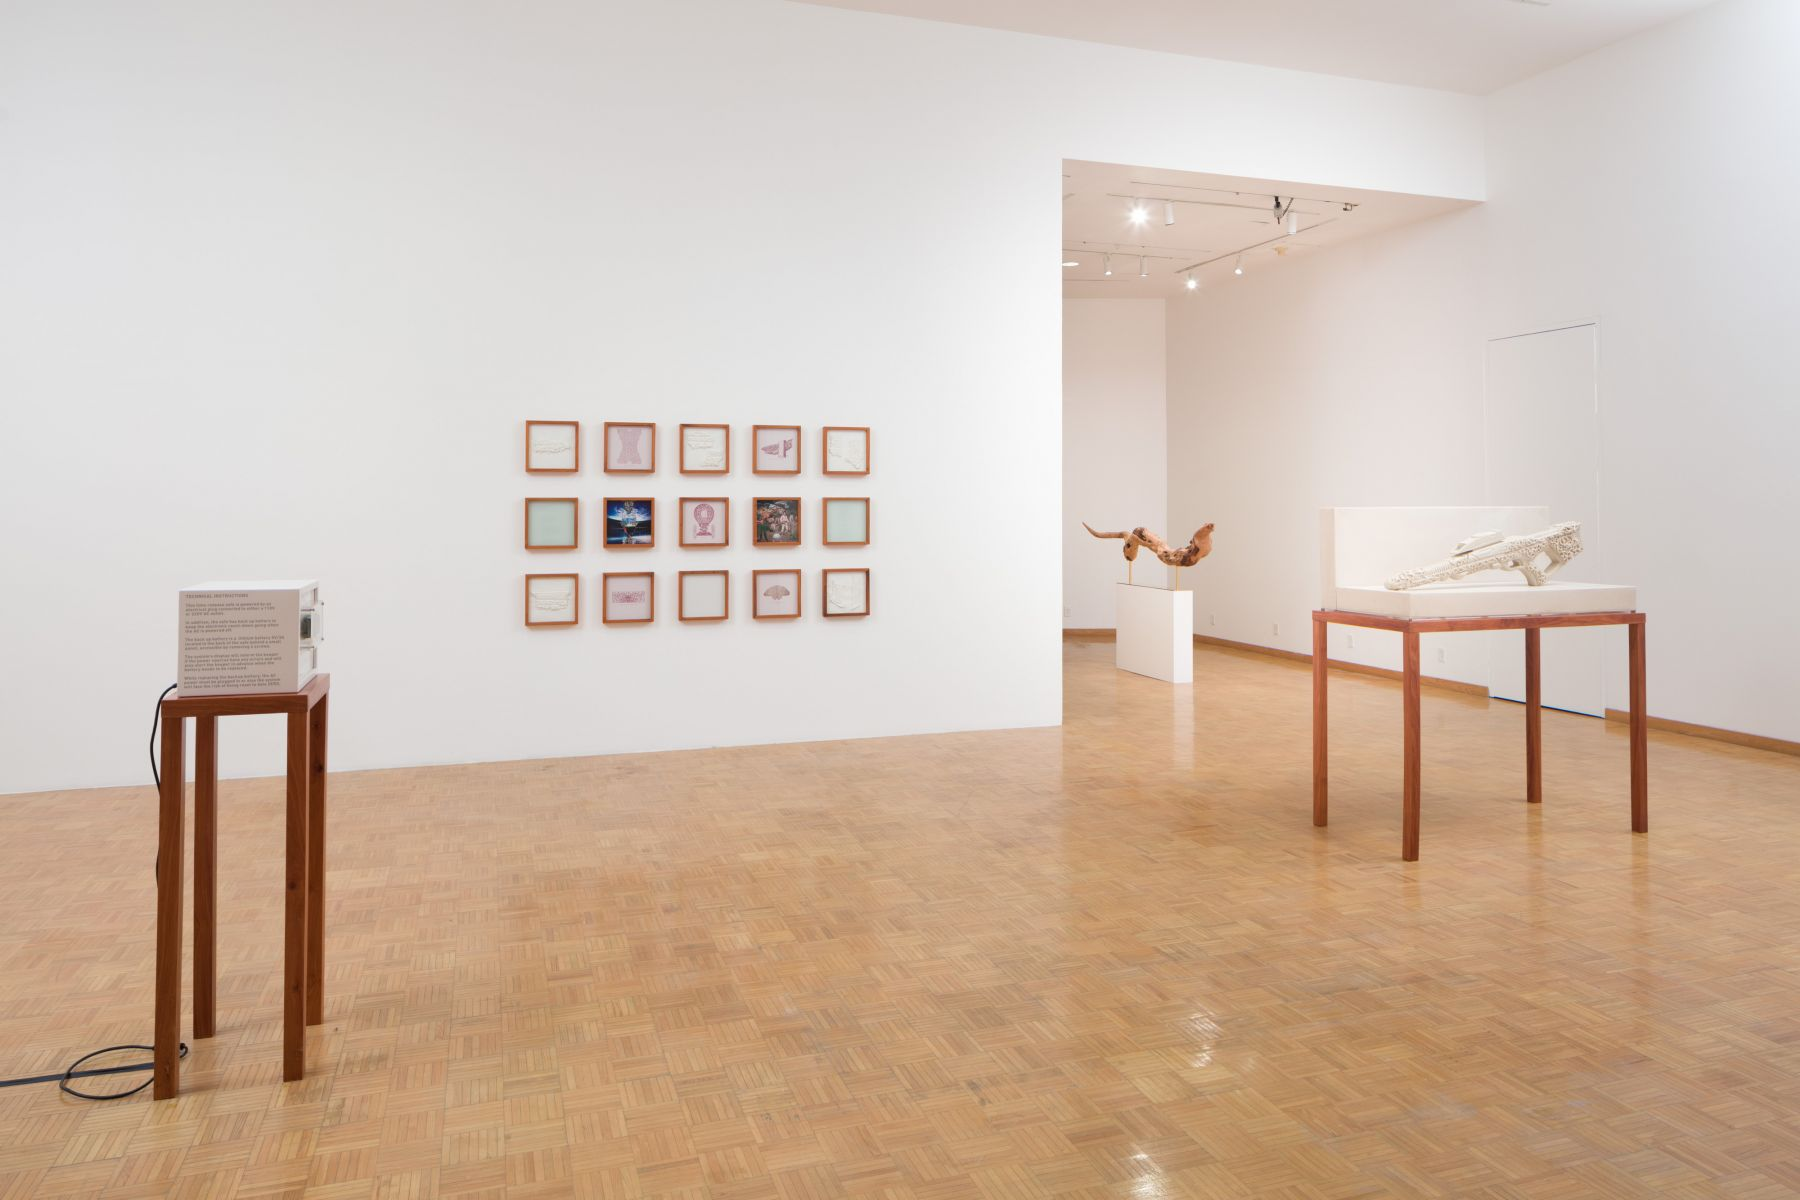 Installation view, The Propeller Group, Luckman Gallery, Los Angeles, CA, December 1, 2018 - March 9, 2019